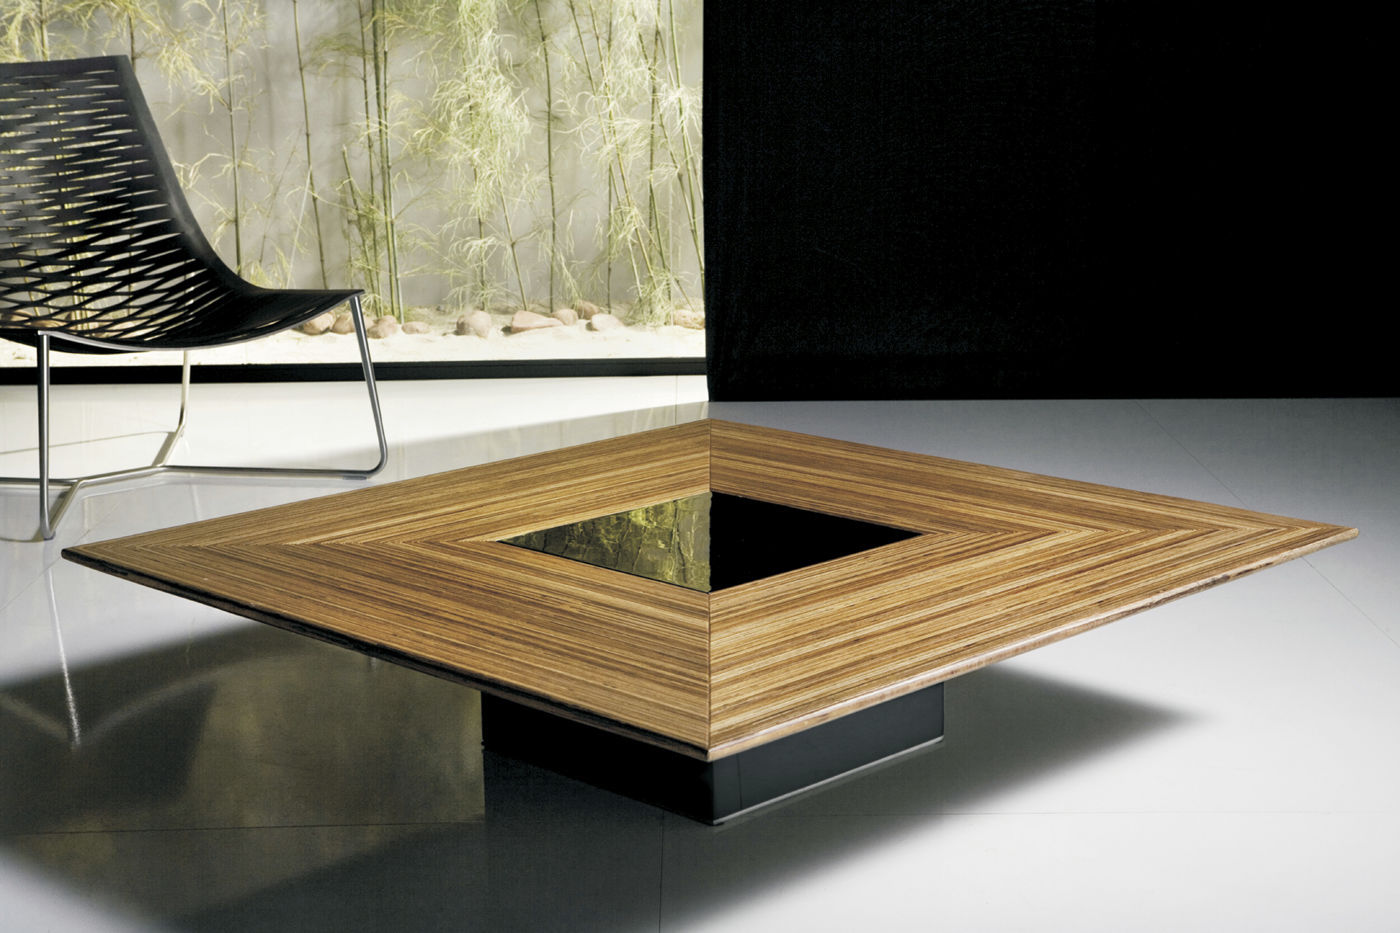 Table basse design contemporain